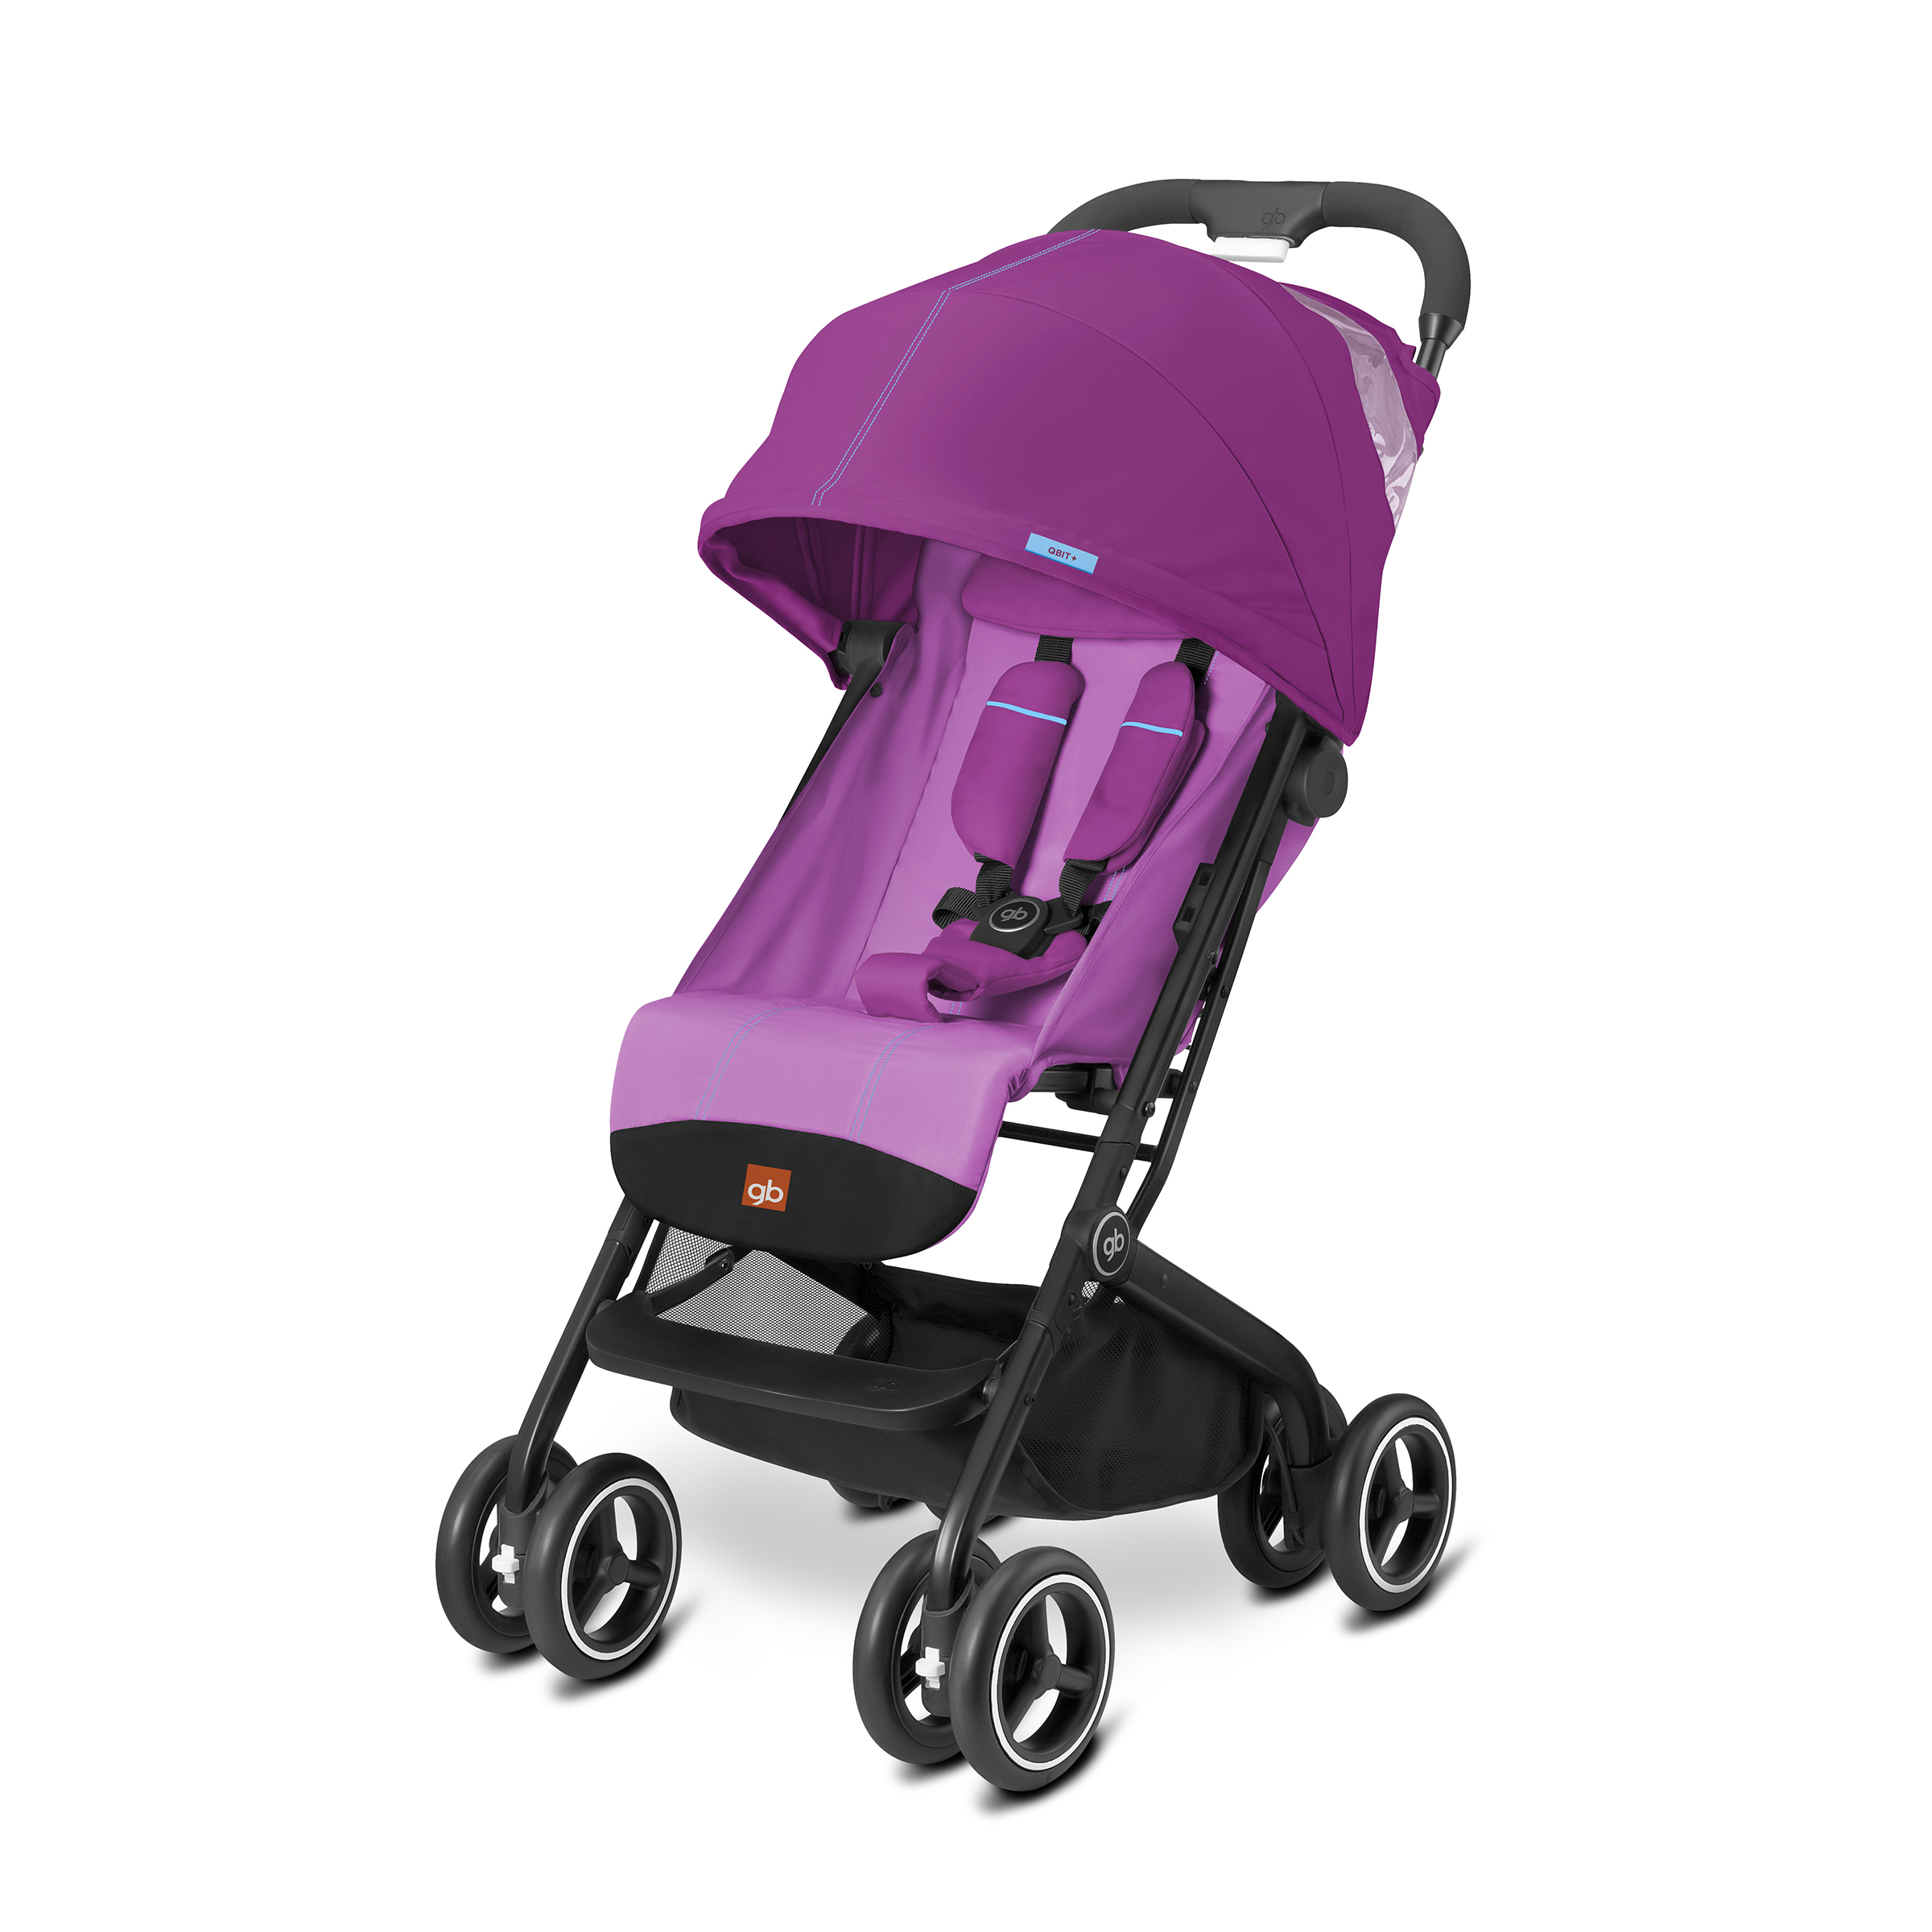 gb Qbit +Lightweight Stroller, Posh Pink by GB